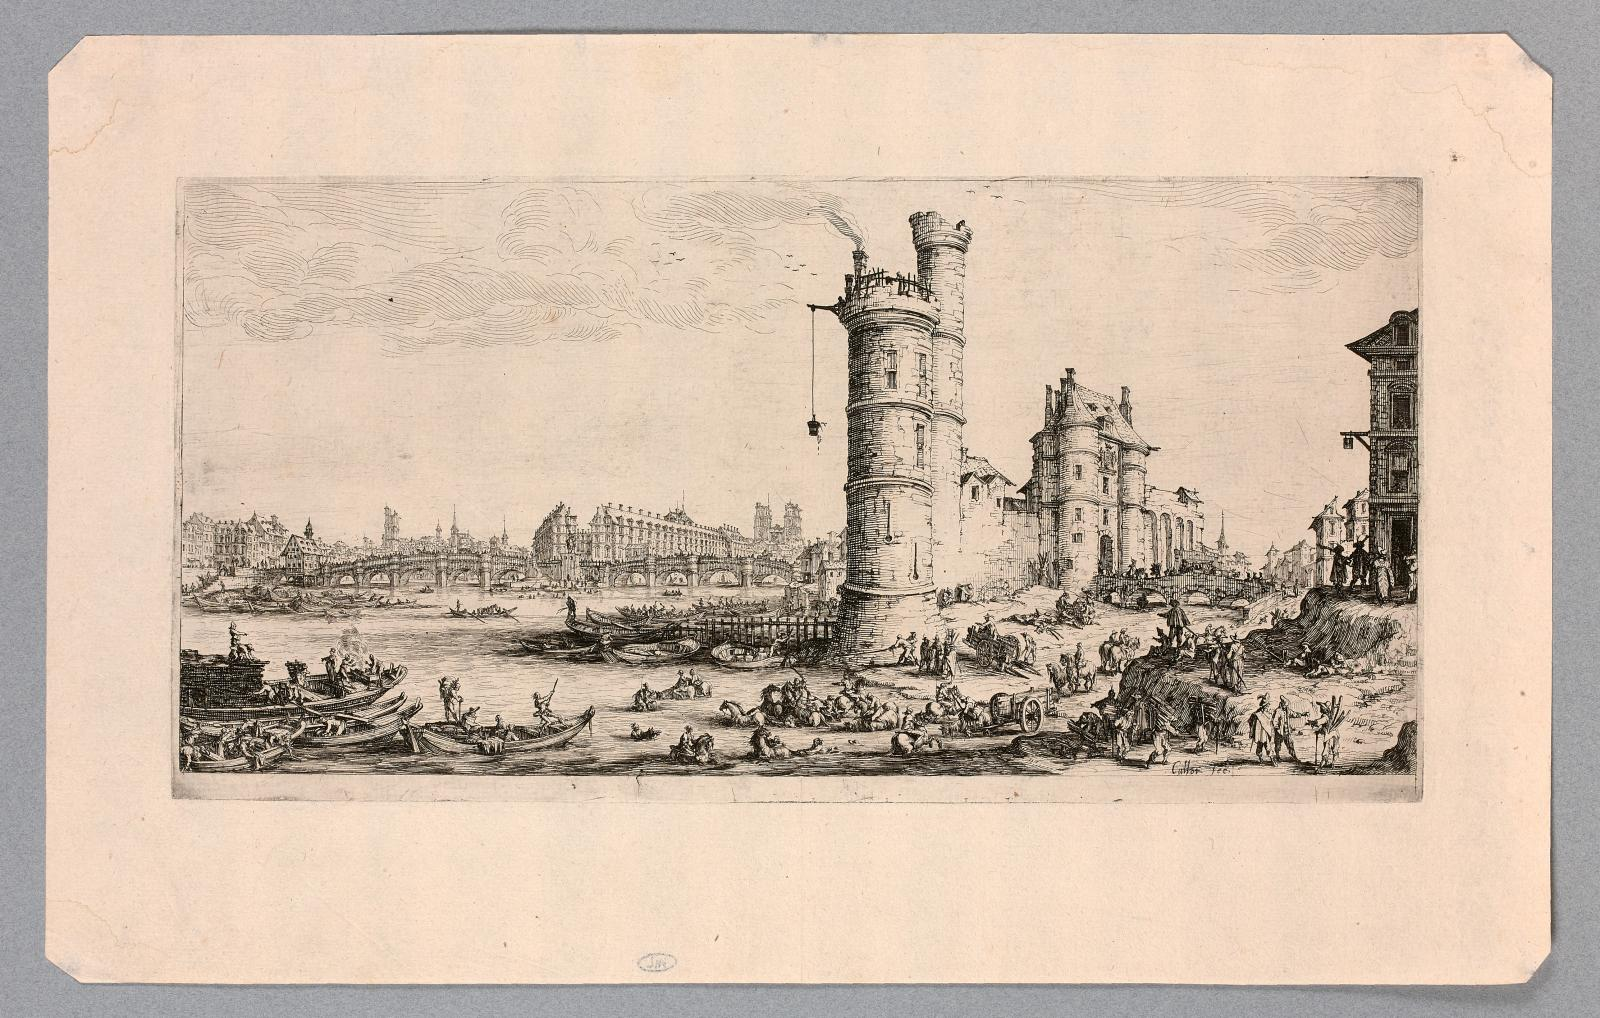 Jacques Callot (1592-1635), Two Grand Views of Paris: View of the Louvre - View of Pont-Neuf (reproduced, two matching etchings, 2nd state